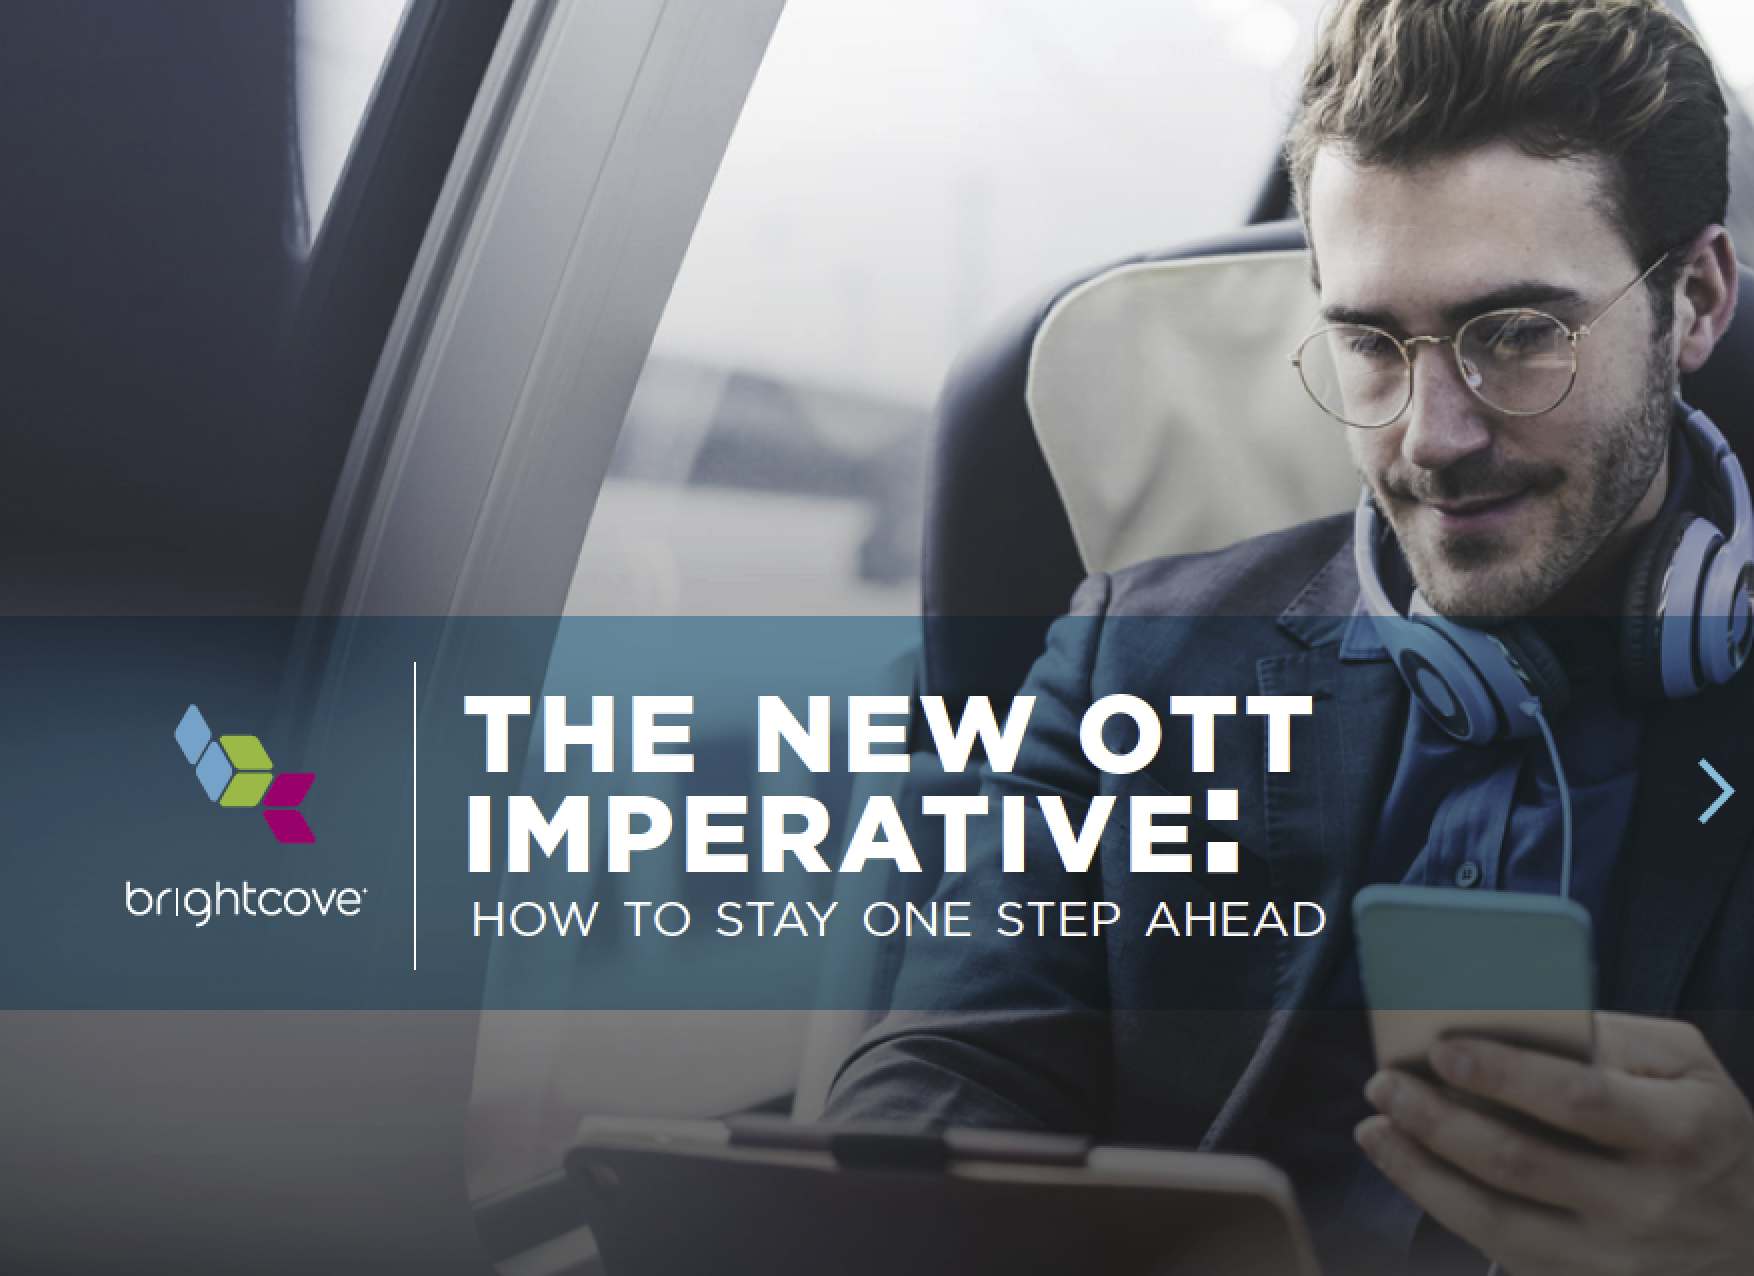 The New OTT Imperative: How to Stay One Step Ahead